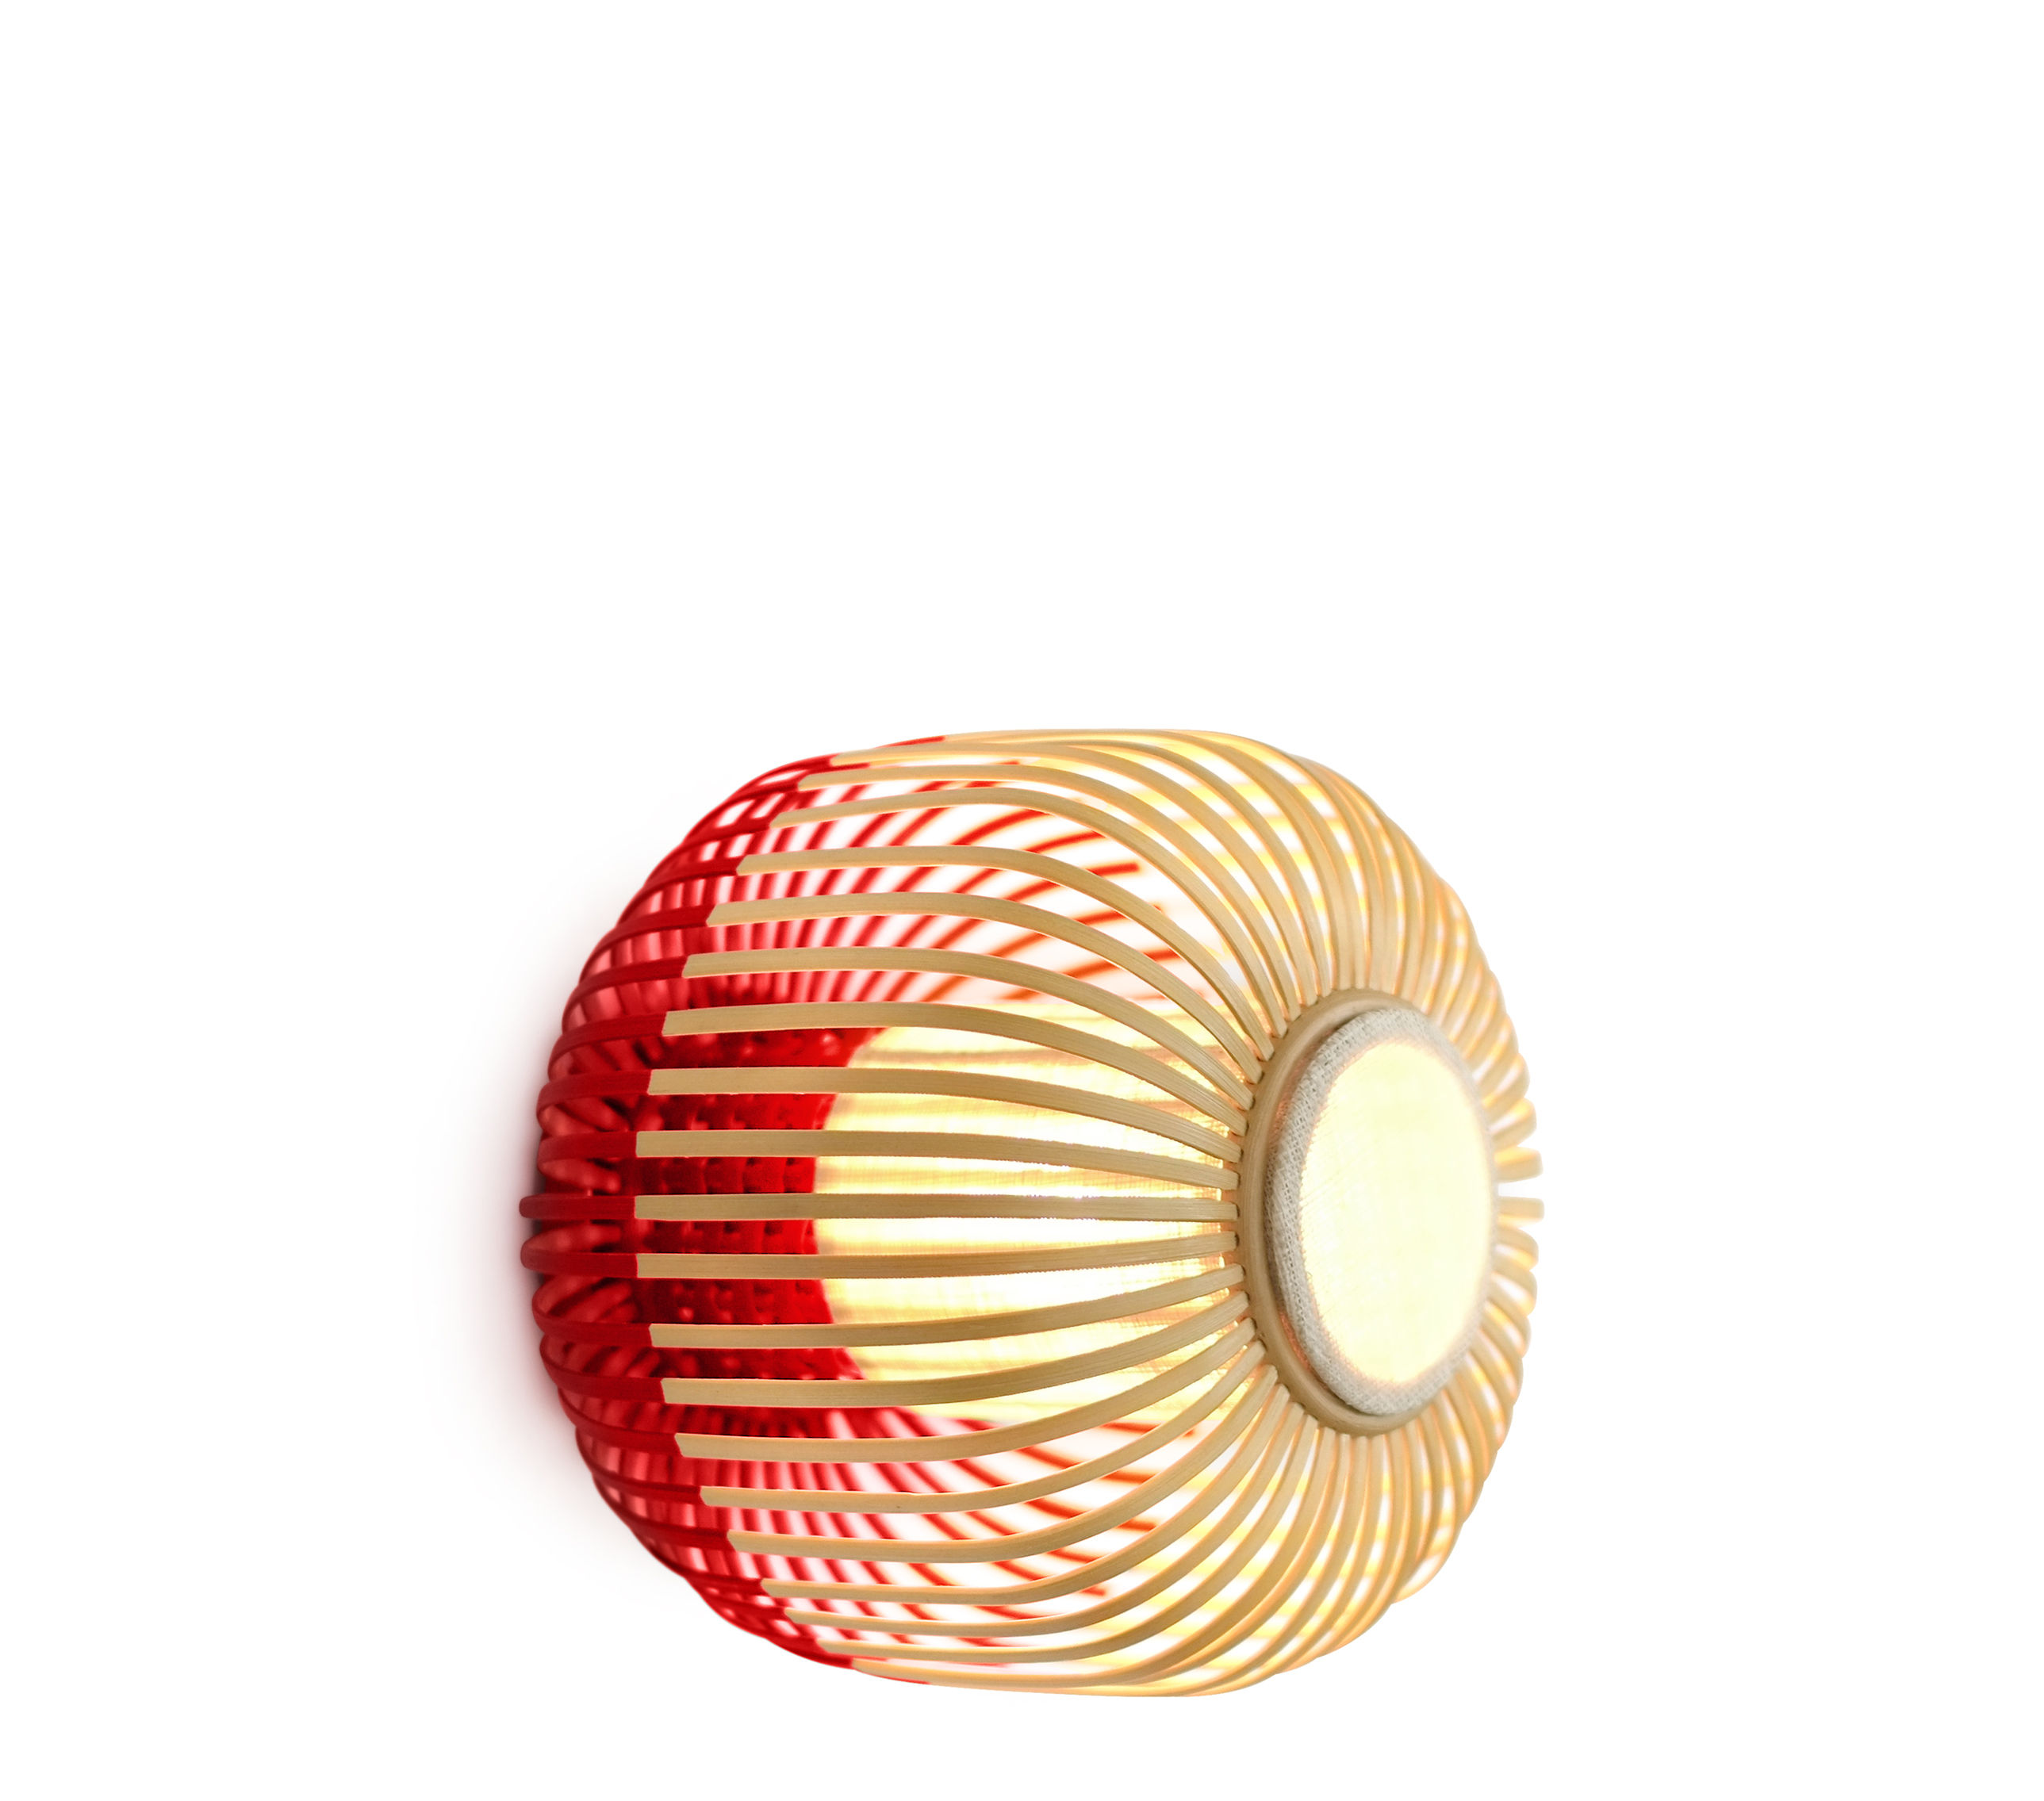 Lighting - Wall Lights - Bamboo light XS Wall light - Ceiling lamp - Ø 27 x H 20 cm by Forestier - Red / Natural - Fabric, Natural bamboo